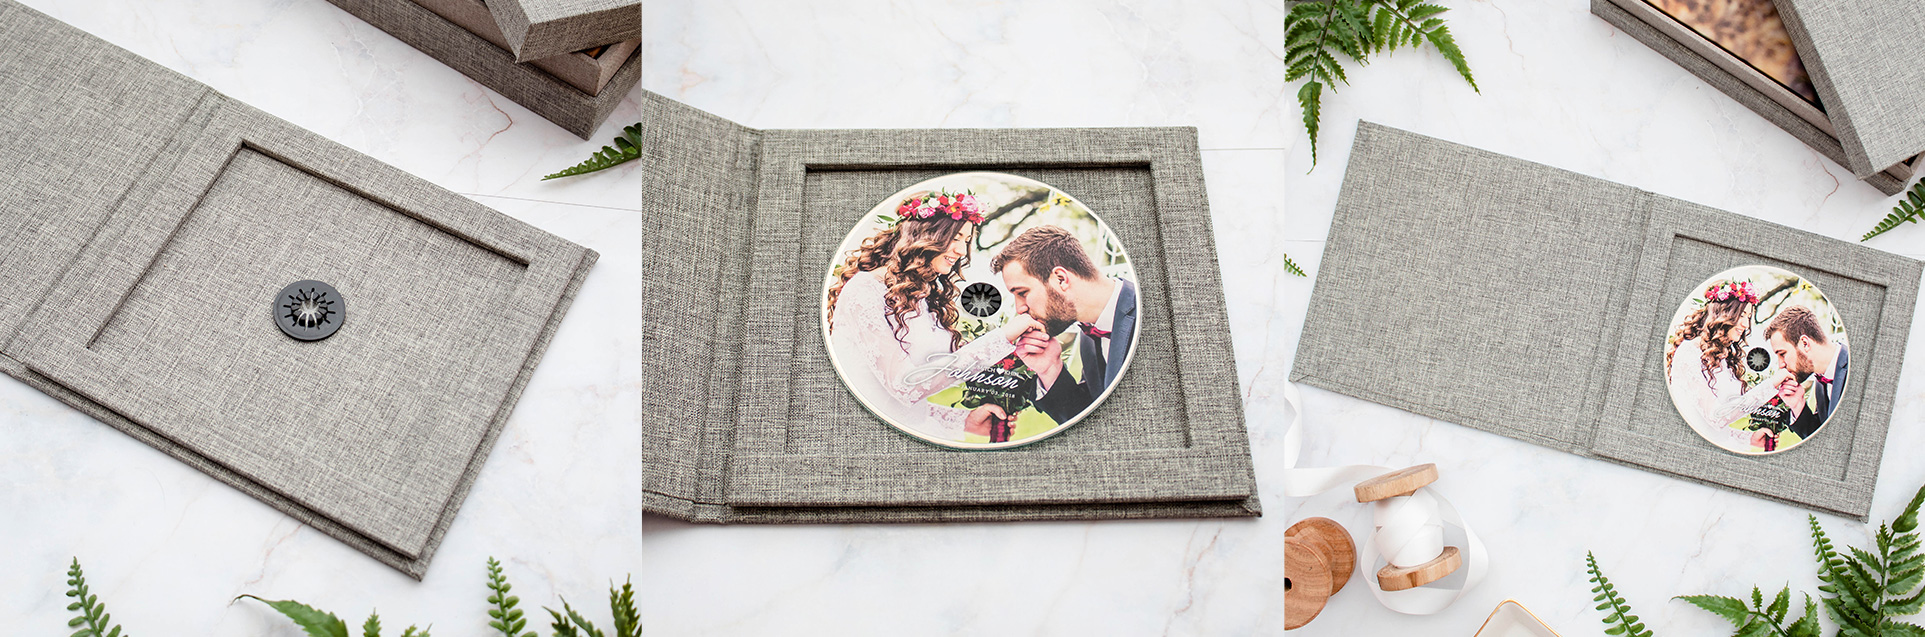 DVD for your wedding photos